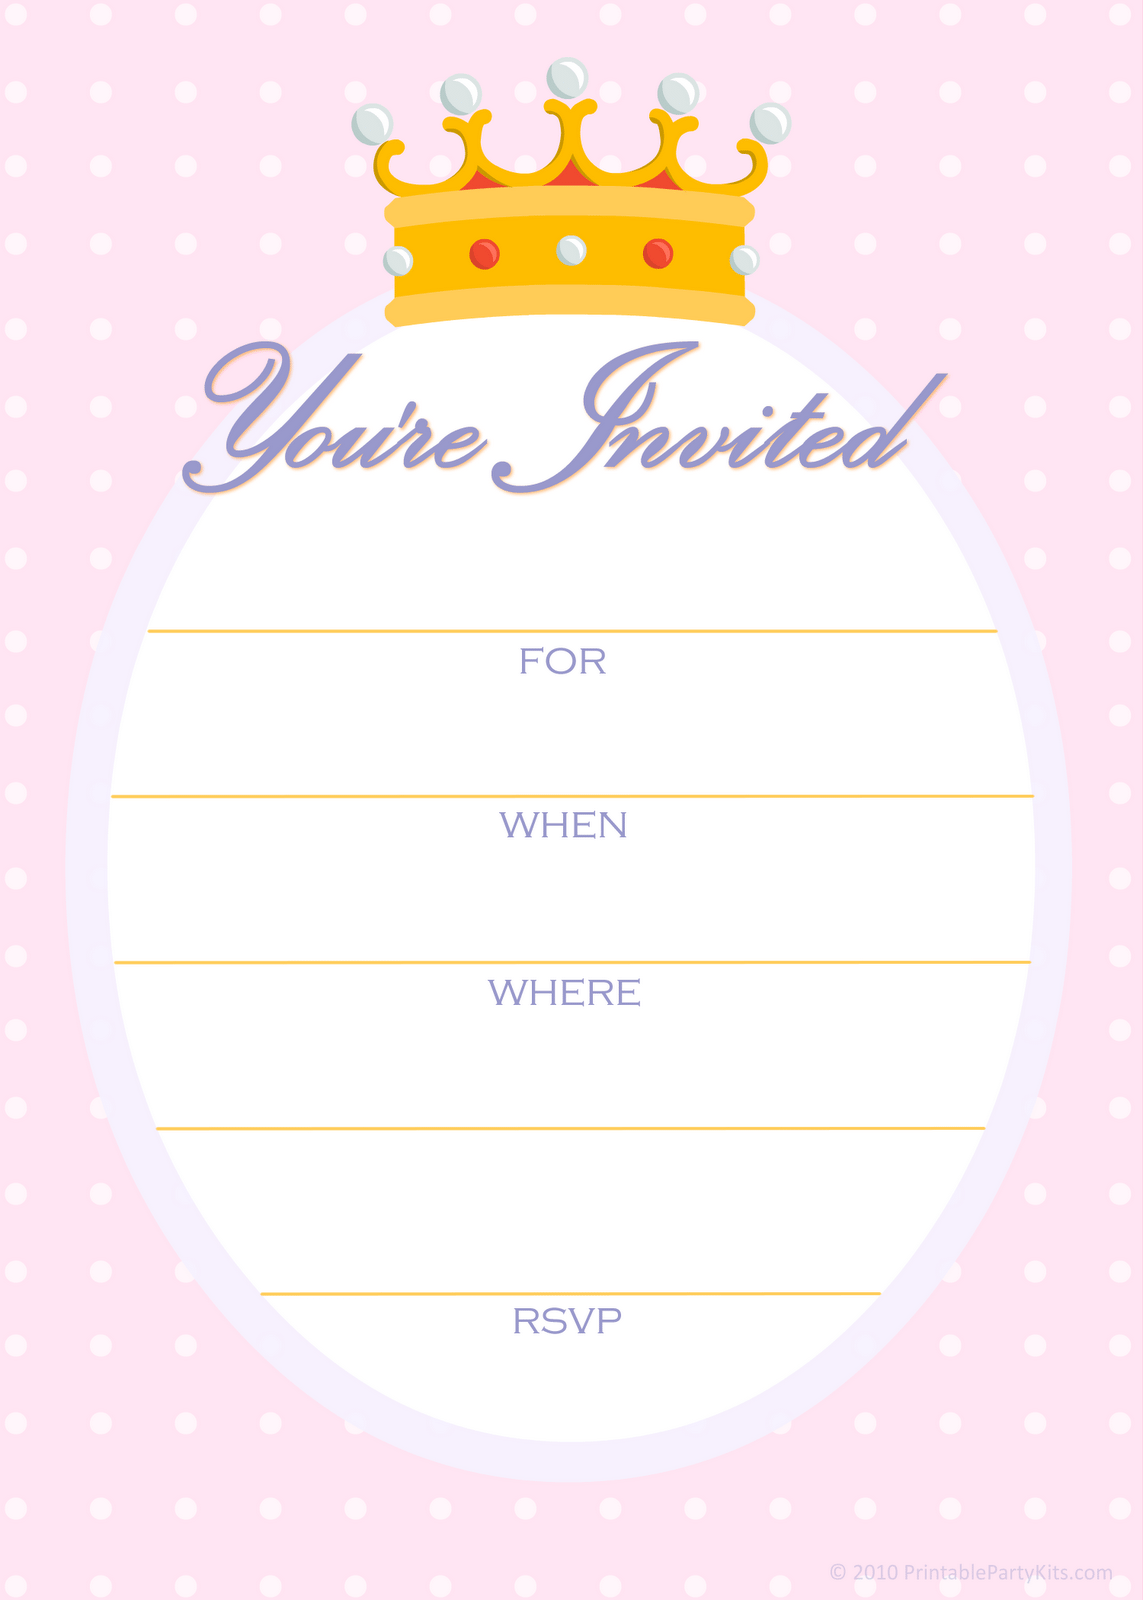 party invitation templates business party invitation company party christmas party invitation templates printable get vhzog9sh